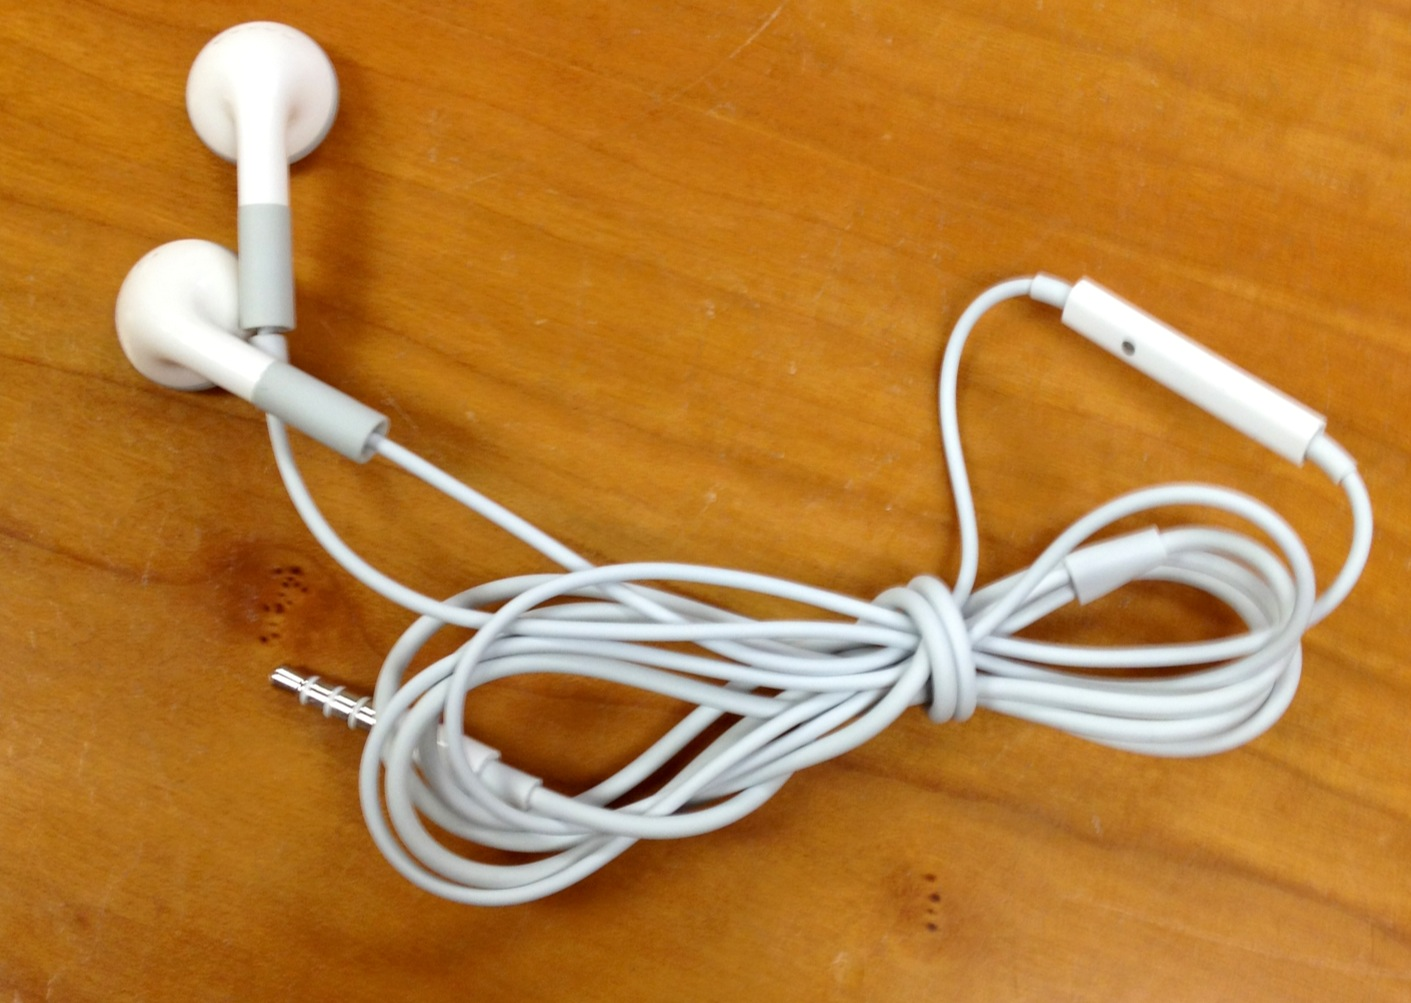 Picture of Wrap Earbuds to Avoid Tangling